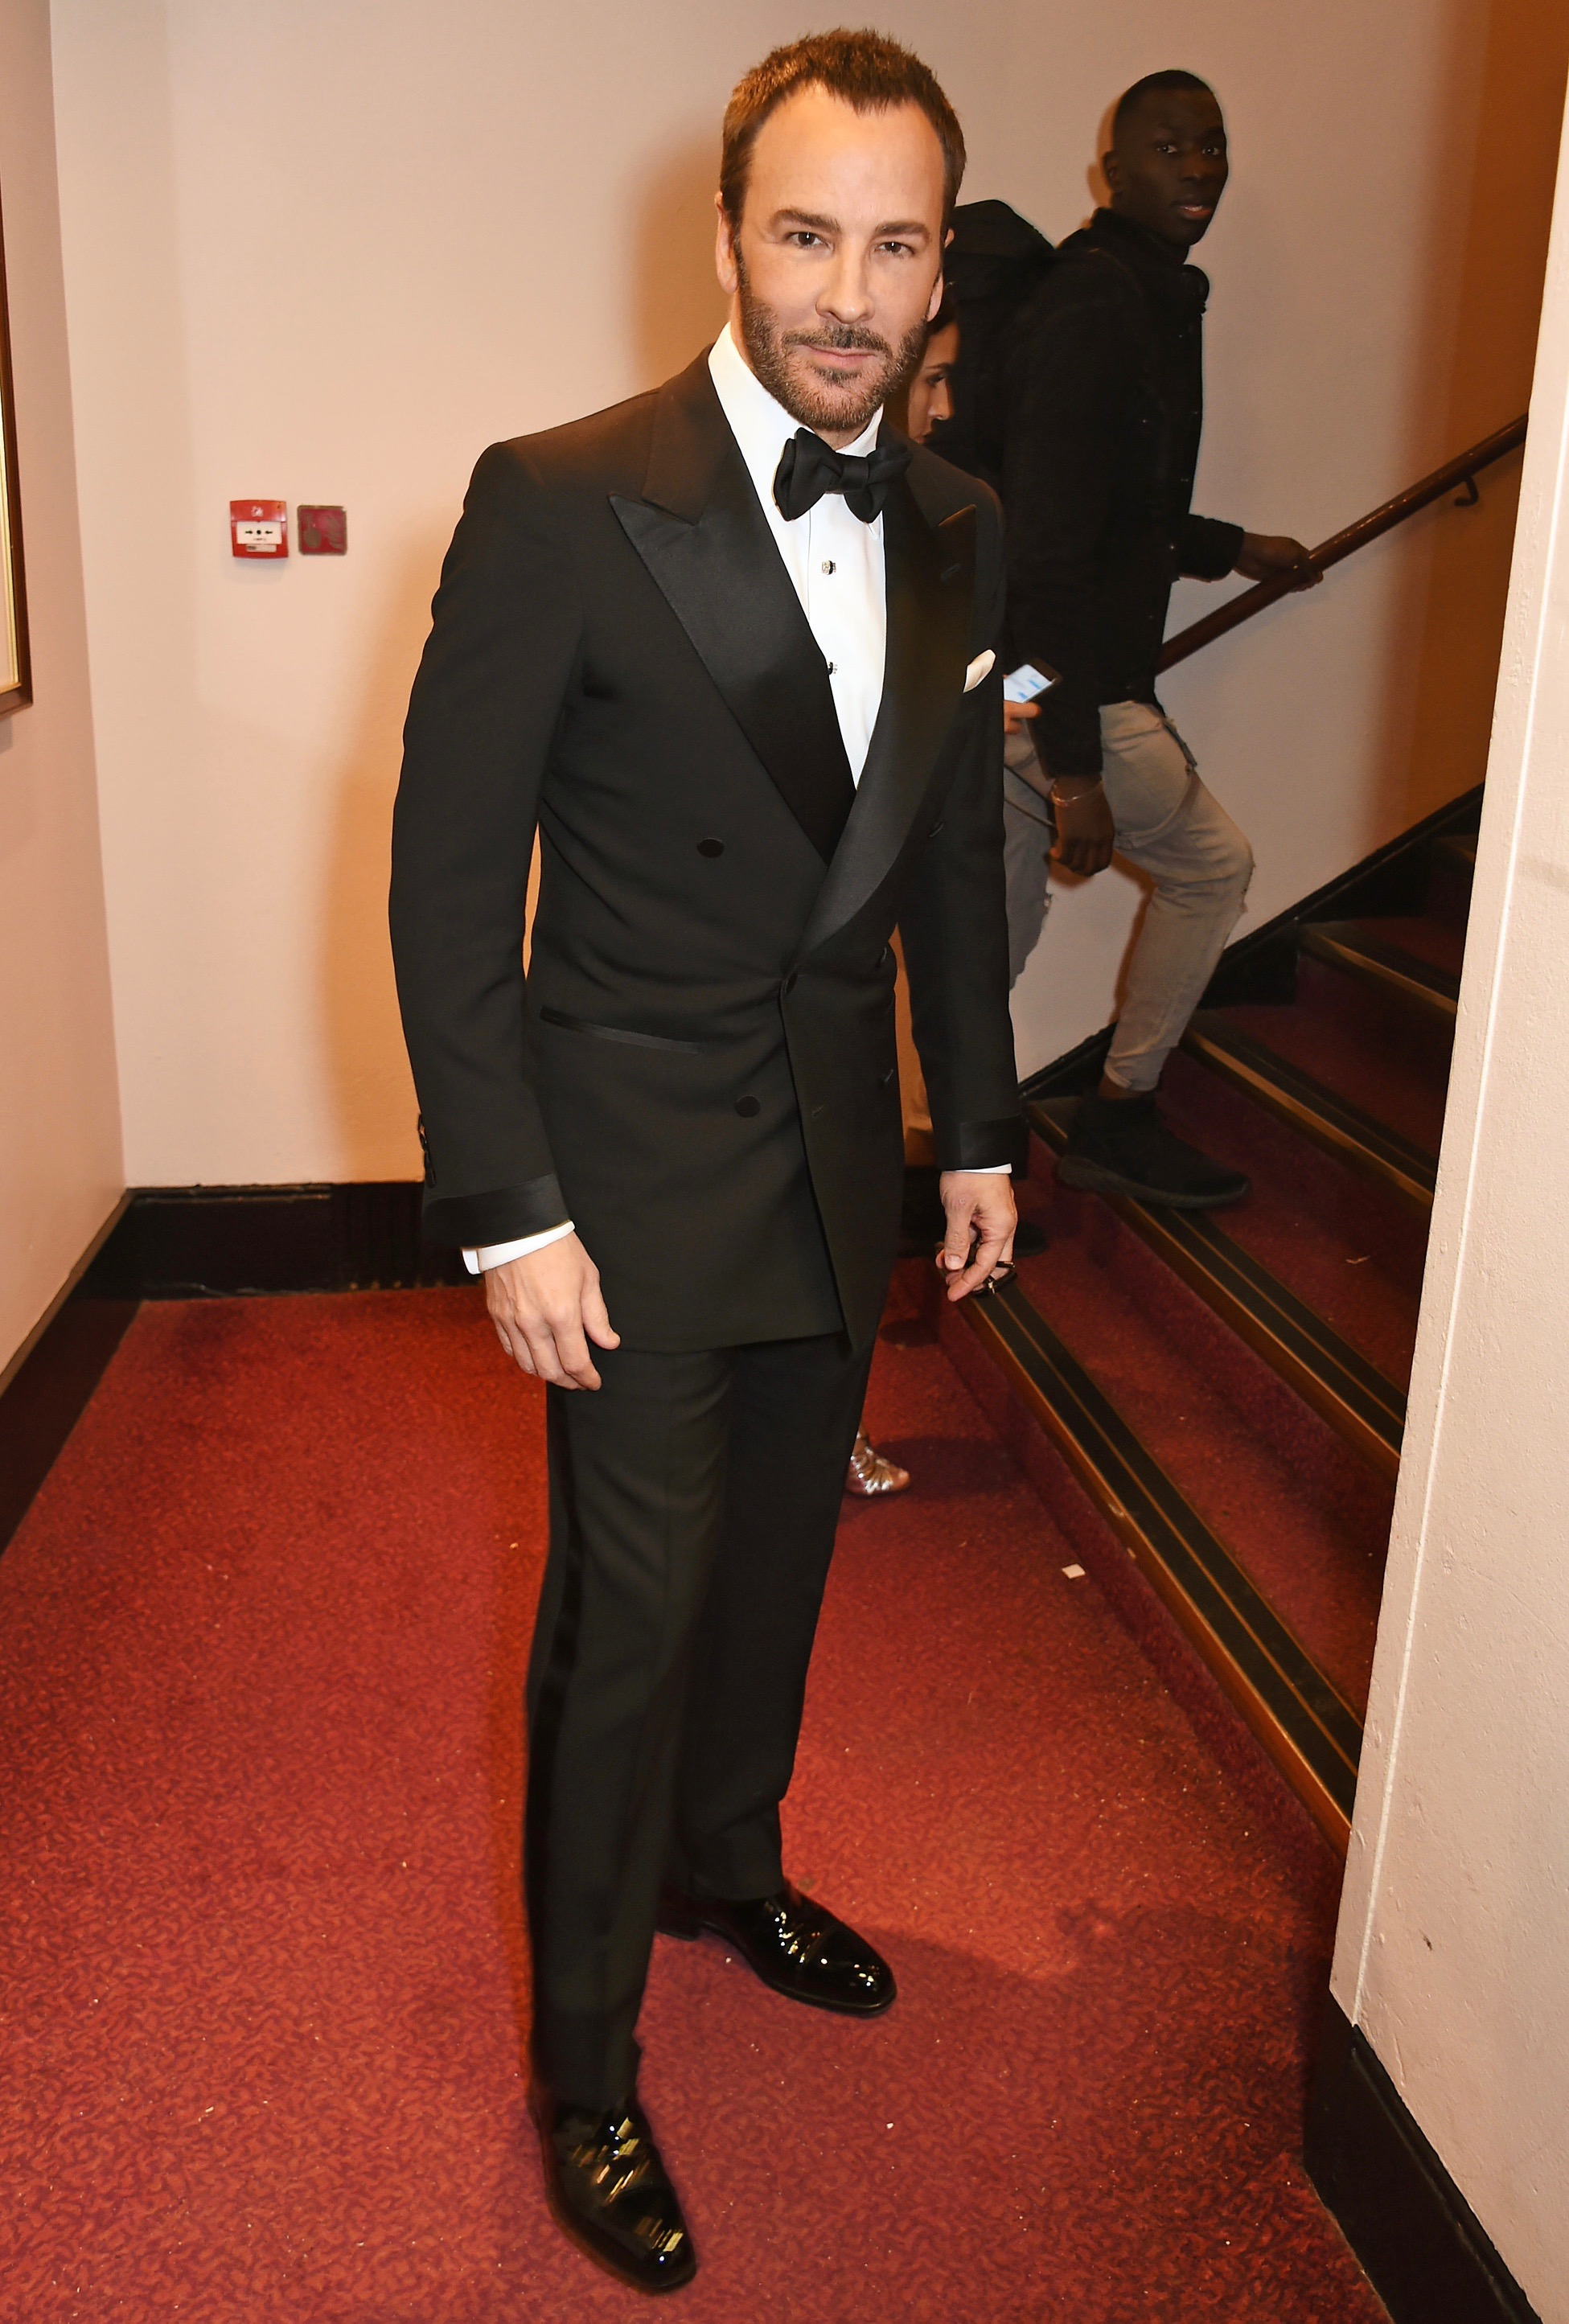 Fashion designer tom ford at the hollywood something or other awards - Tom Ford